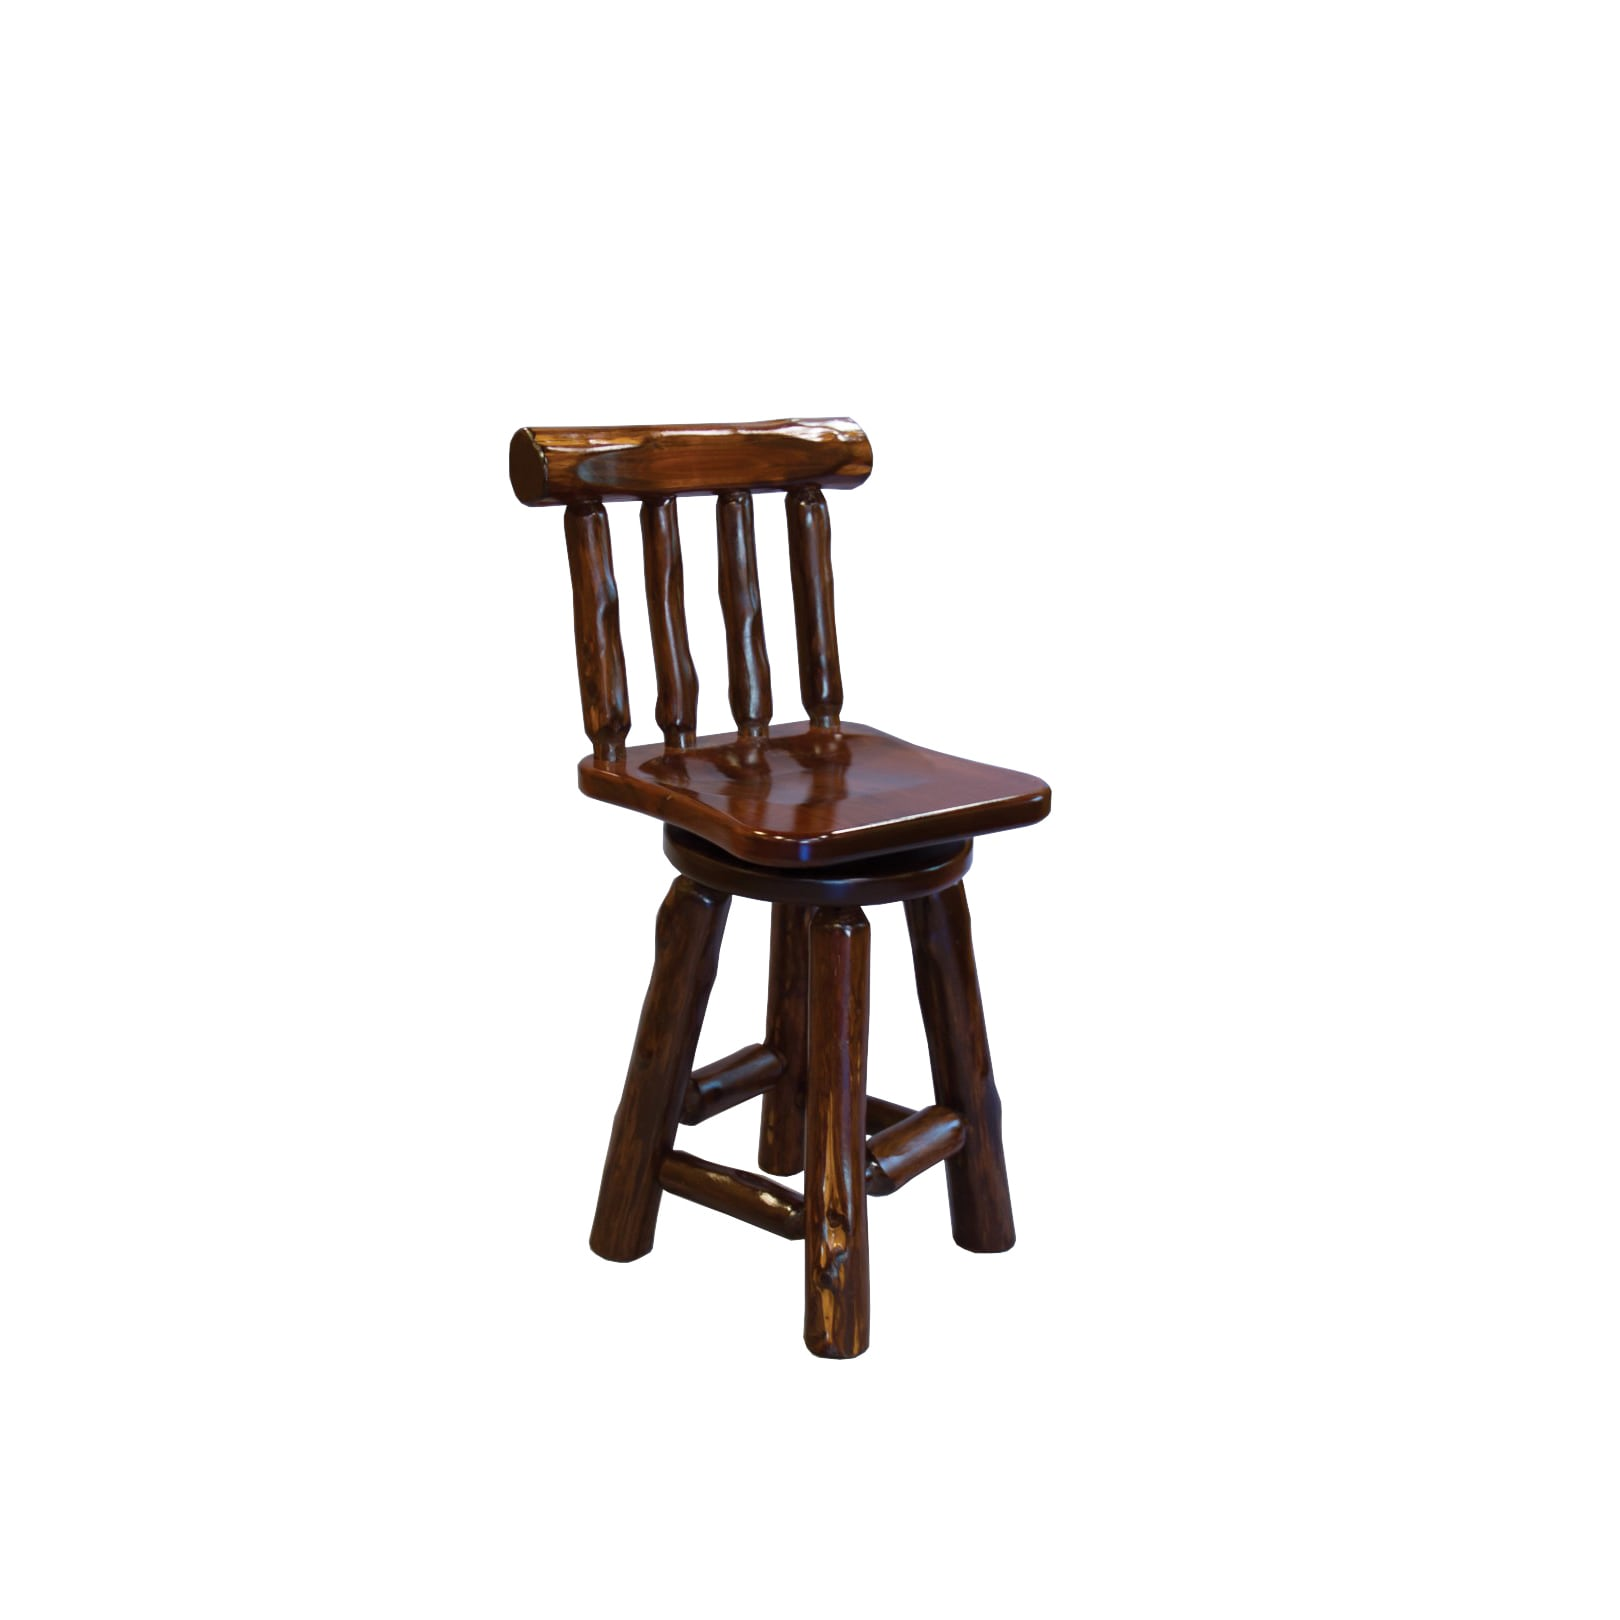 Shop live edge rustic red cedar log bar stools amish made usa multiple sizes free shipping today overstock com 14230758